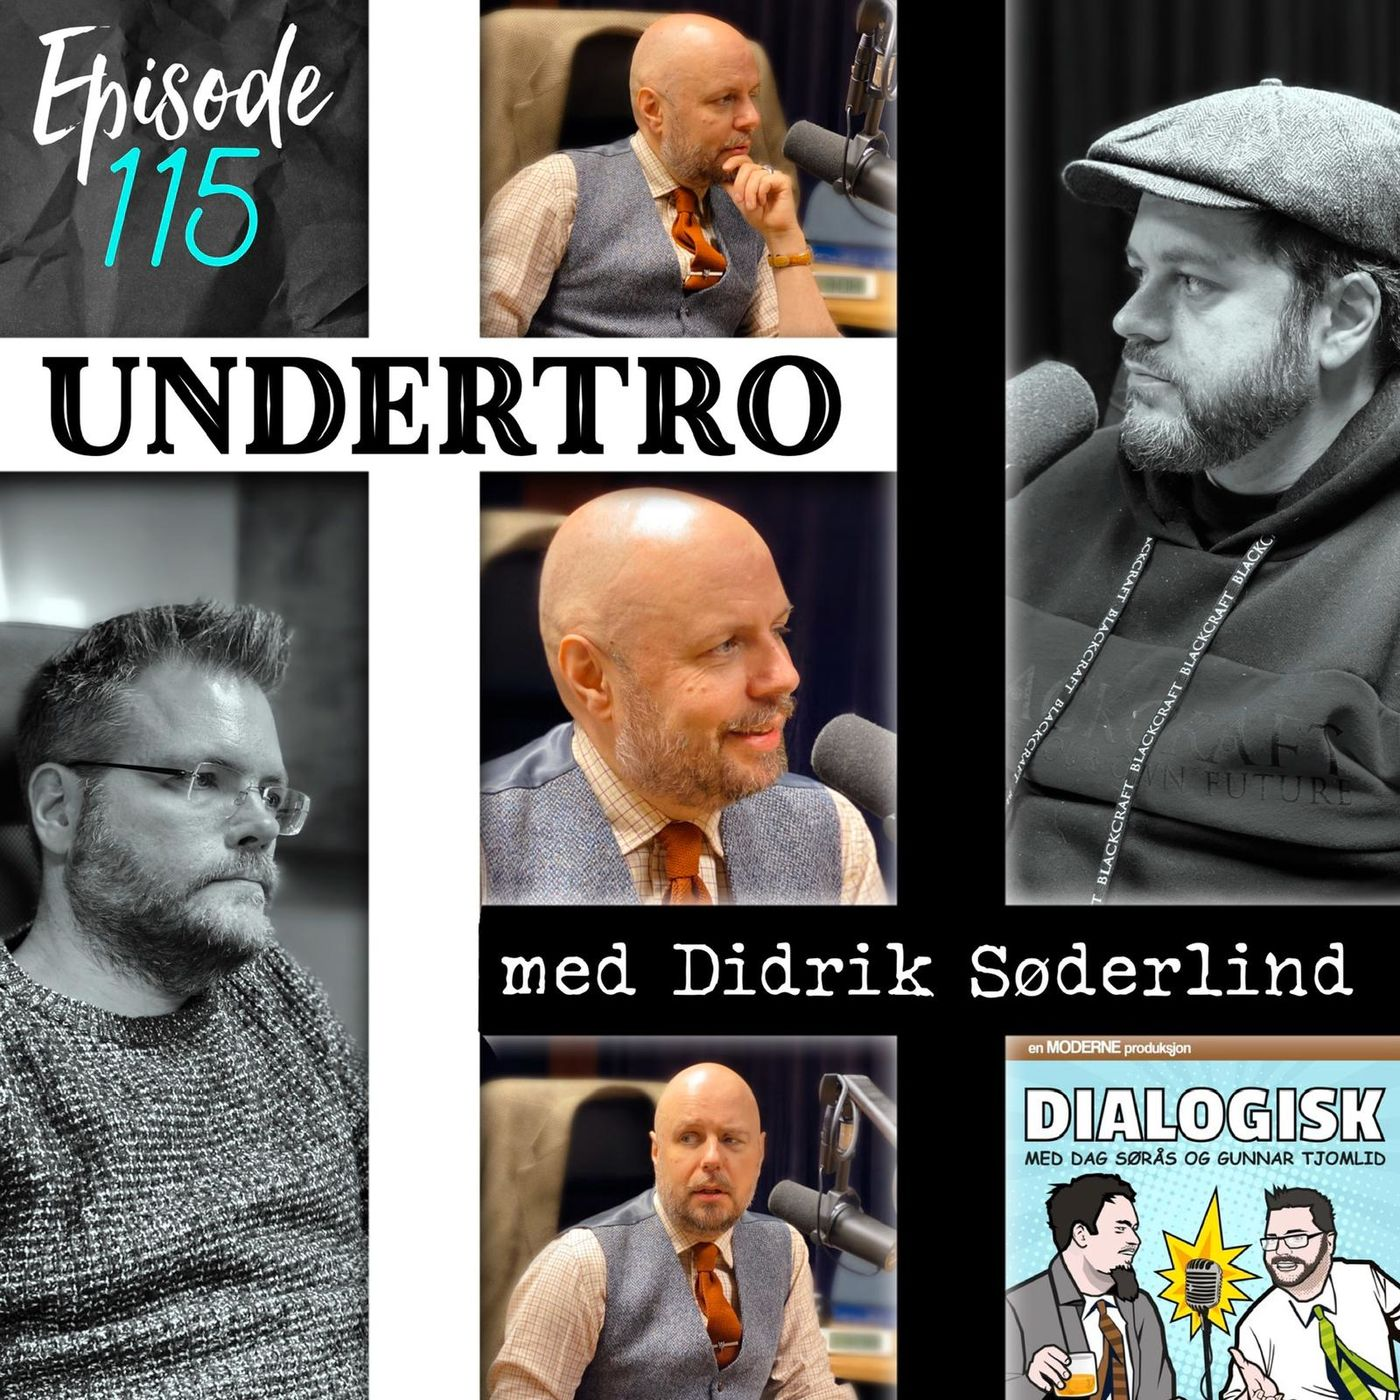 Episode 115: Undertro (med Didrik Søderlind)